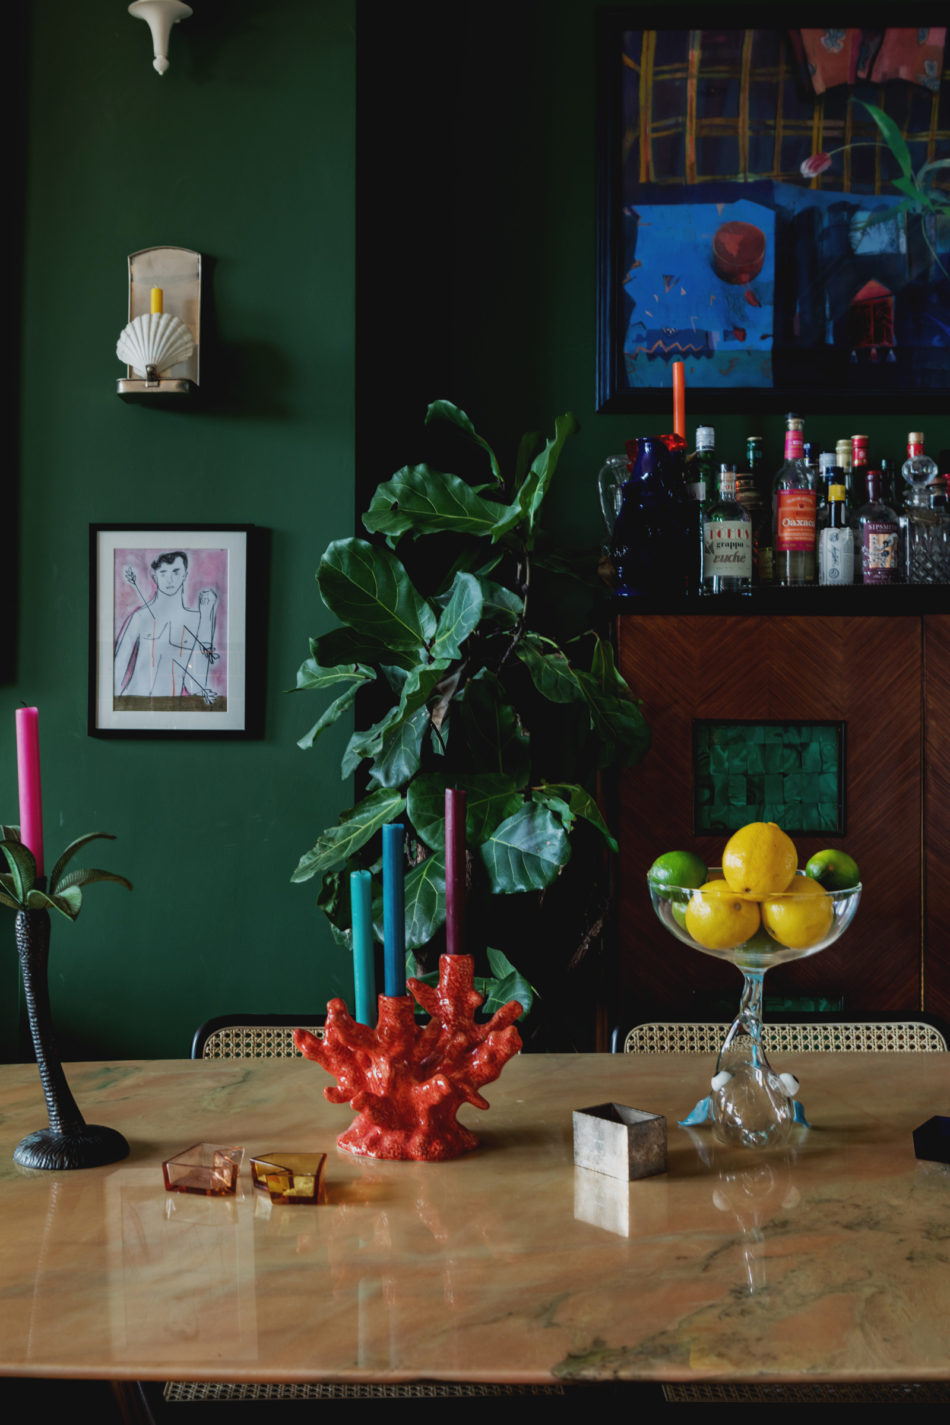 London flat goes all-in on color and whimsical decor